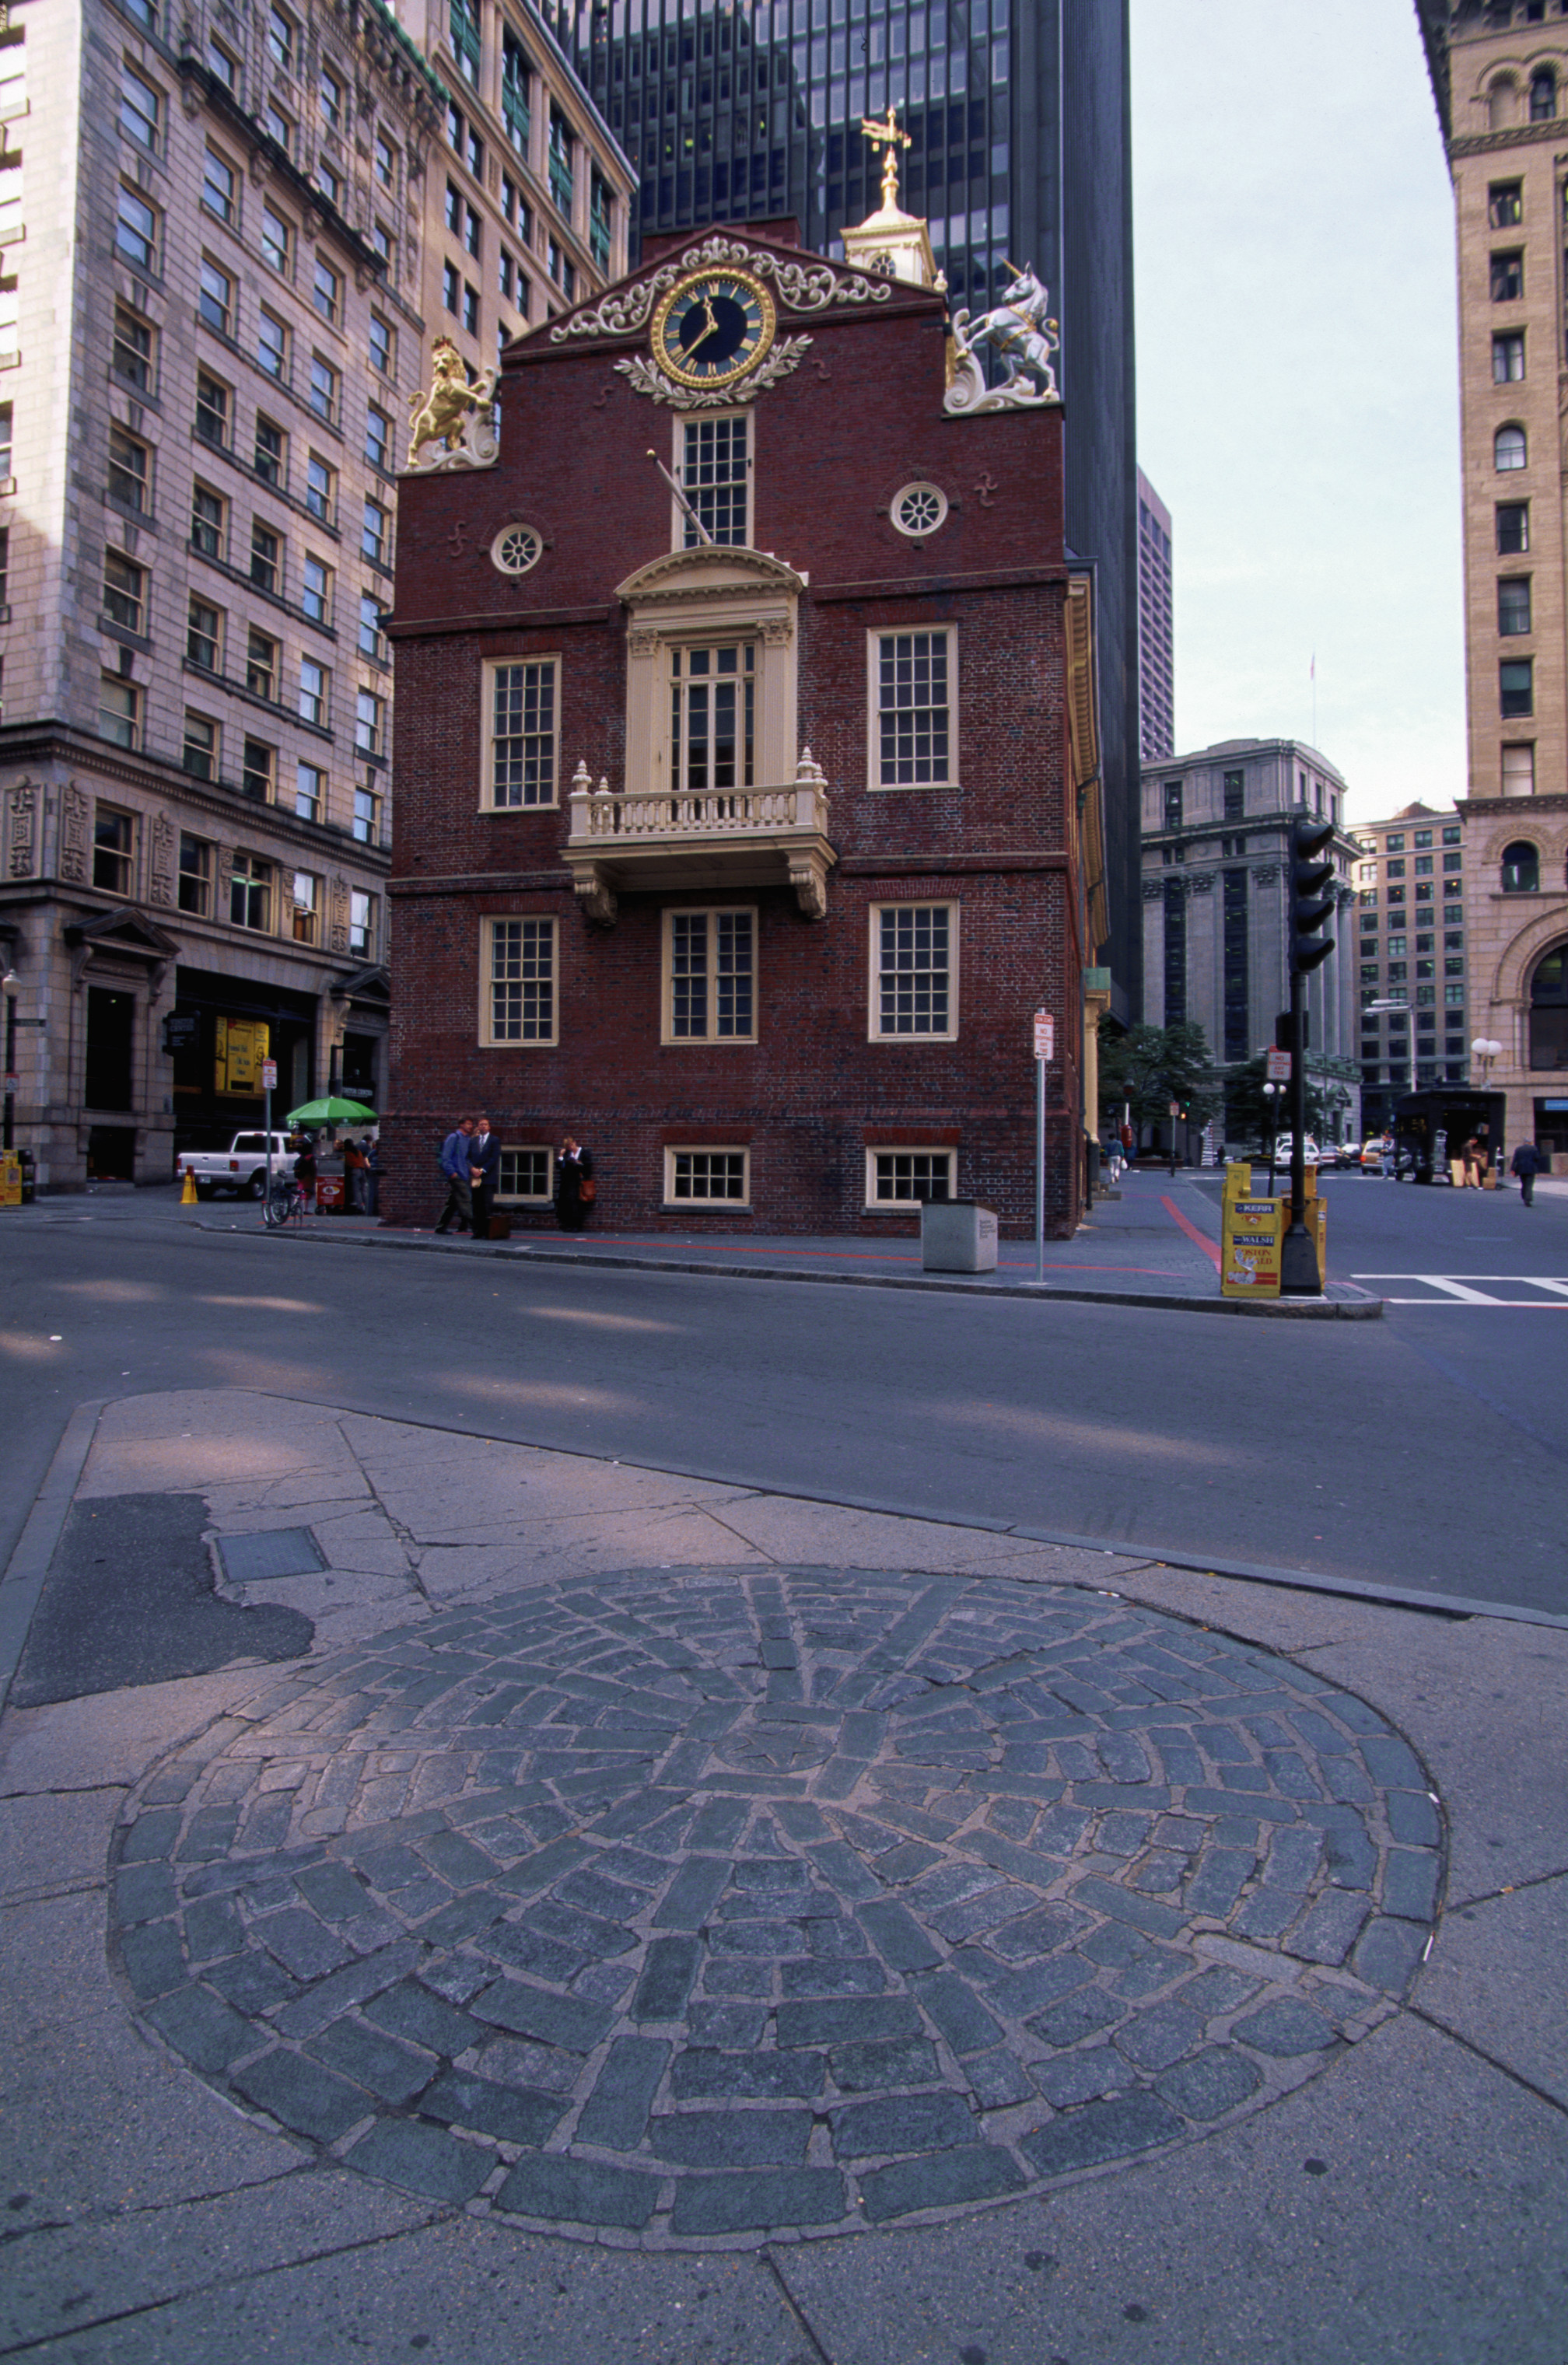 a history of the boston massacre from march 1770 At the end of march 1770, just three weeks after the boston massacre, a grand  jury had indicted captain preston and his men as well as four civilians accused  of.